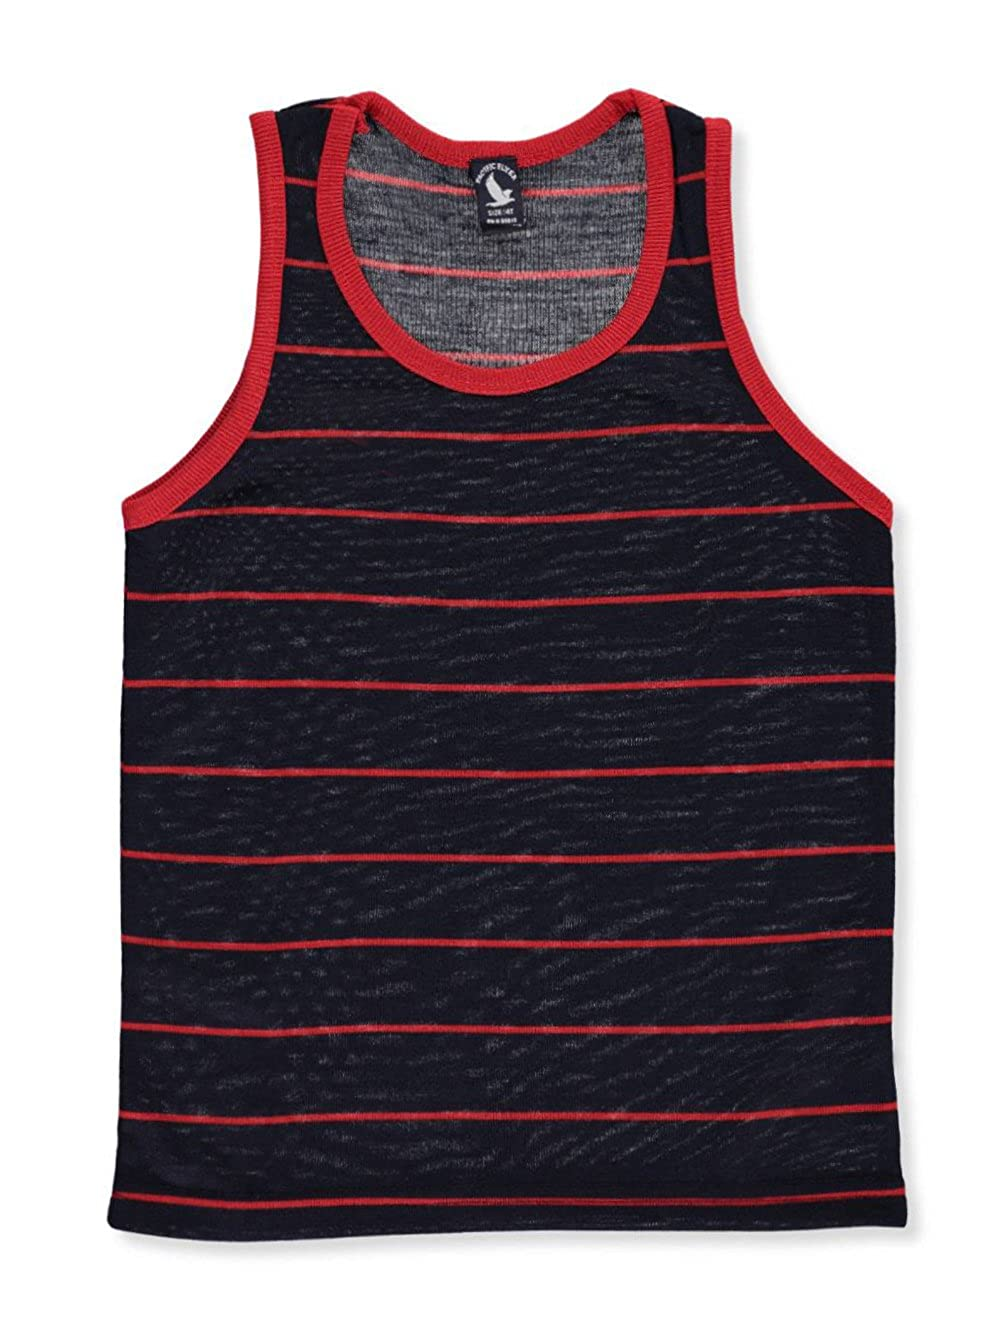 Pacific Flyer Little Boys' Toddler Knit Tank Top 2t